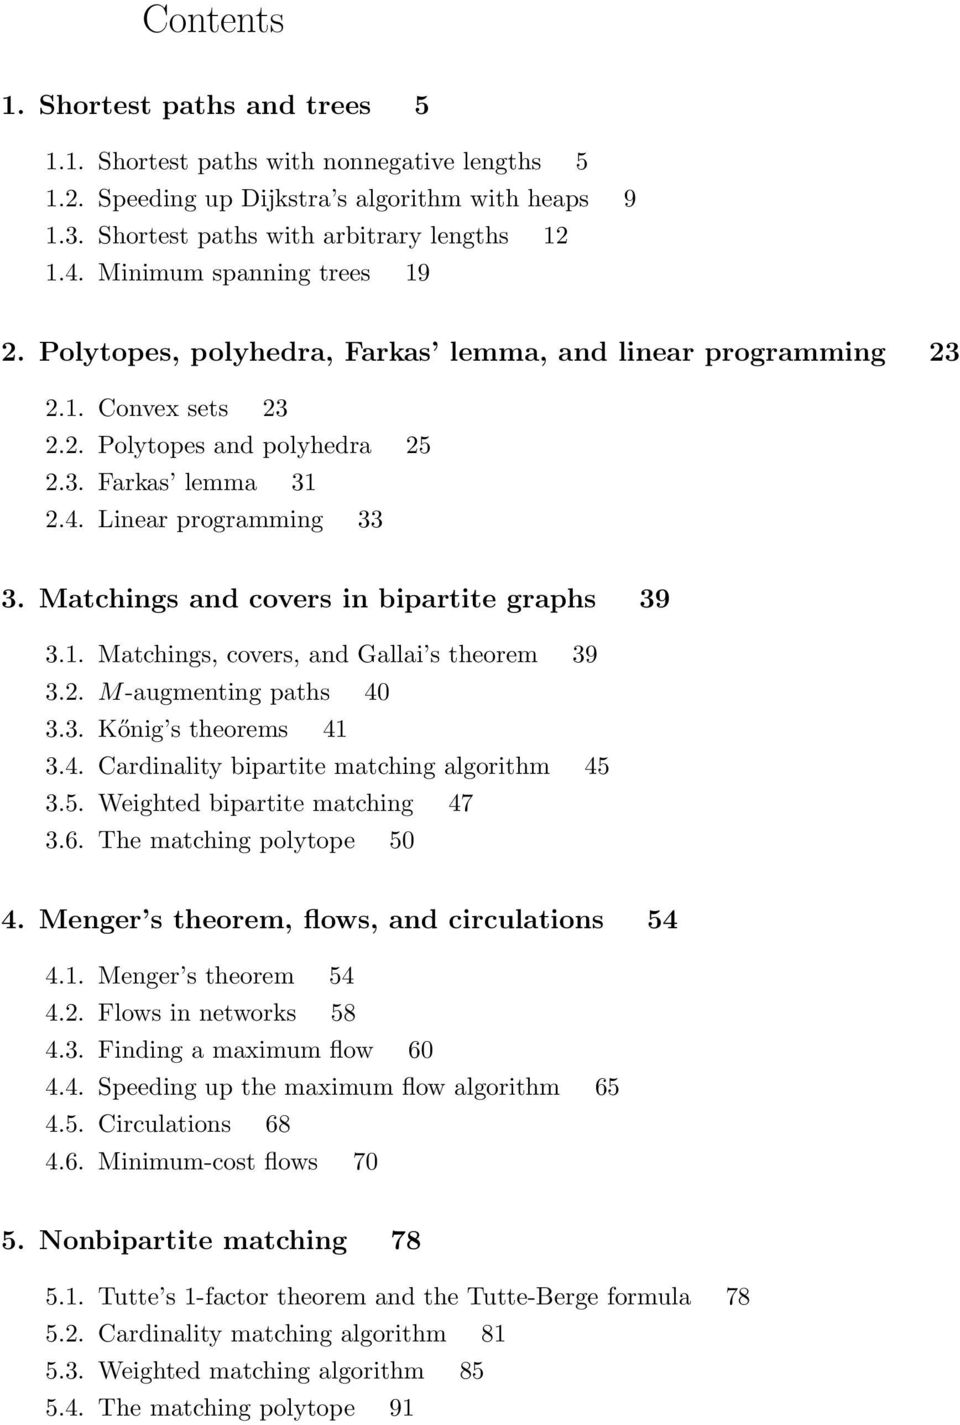 Matchings and covers in bipartite graphs 39 3.1. Matchings, covers, and Gallai s theorem 39 3.2. M-augmenting paths 40 3.3. Kőnig s theorems 41 3.4. Cardinality bipartite matching algorithm 45